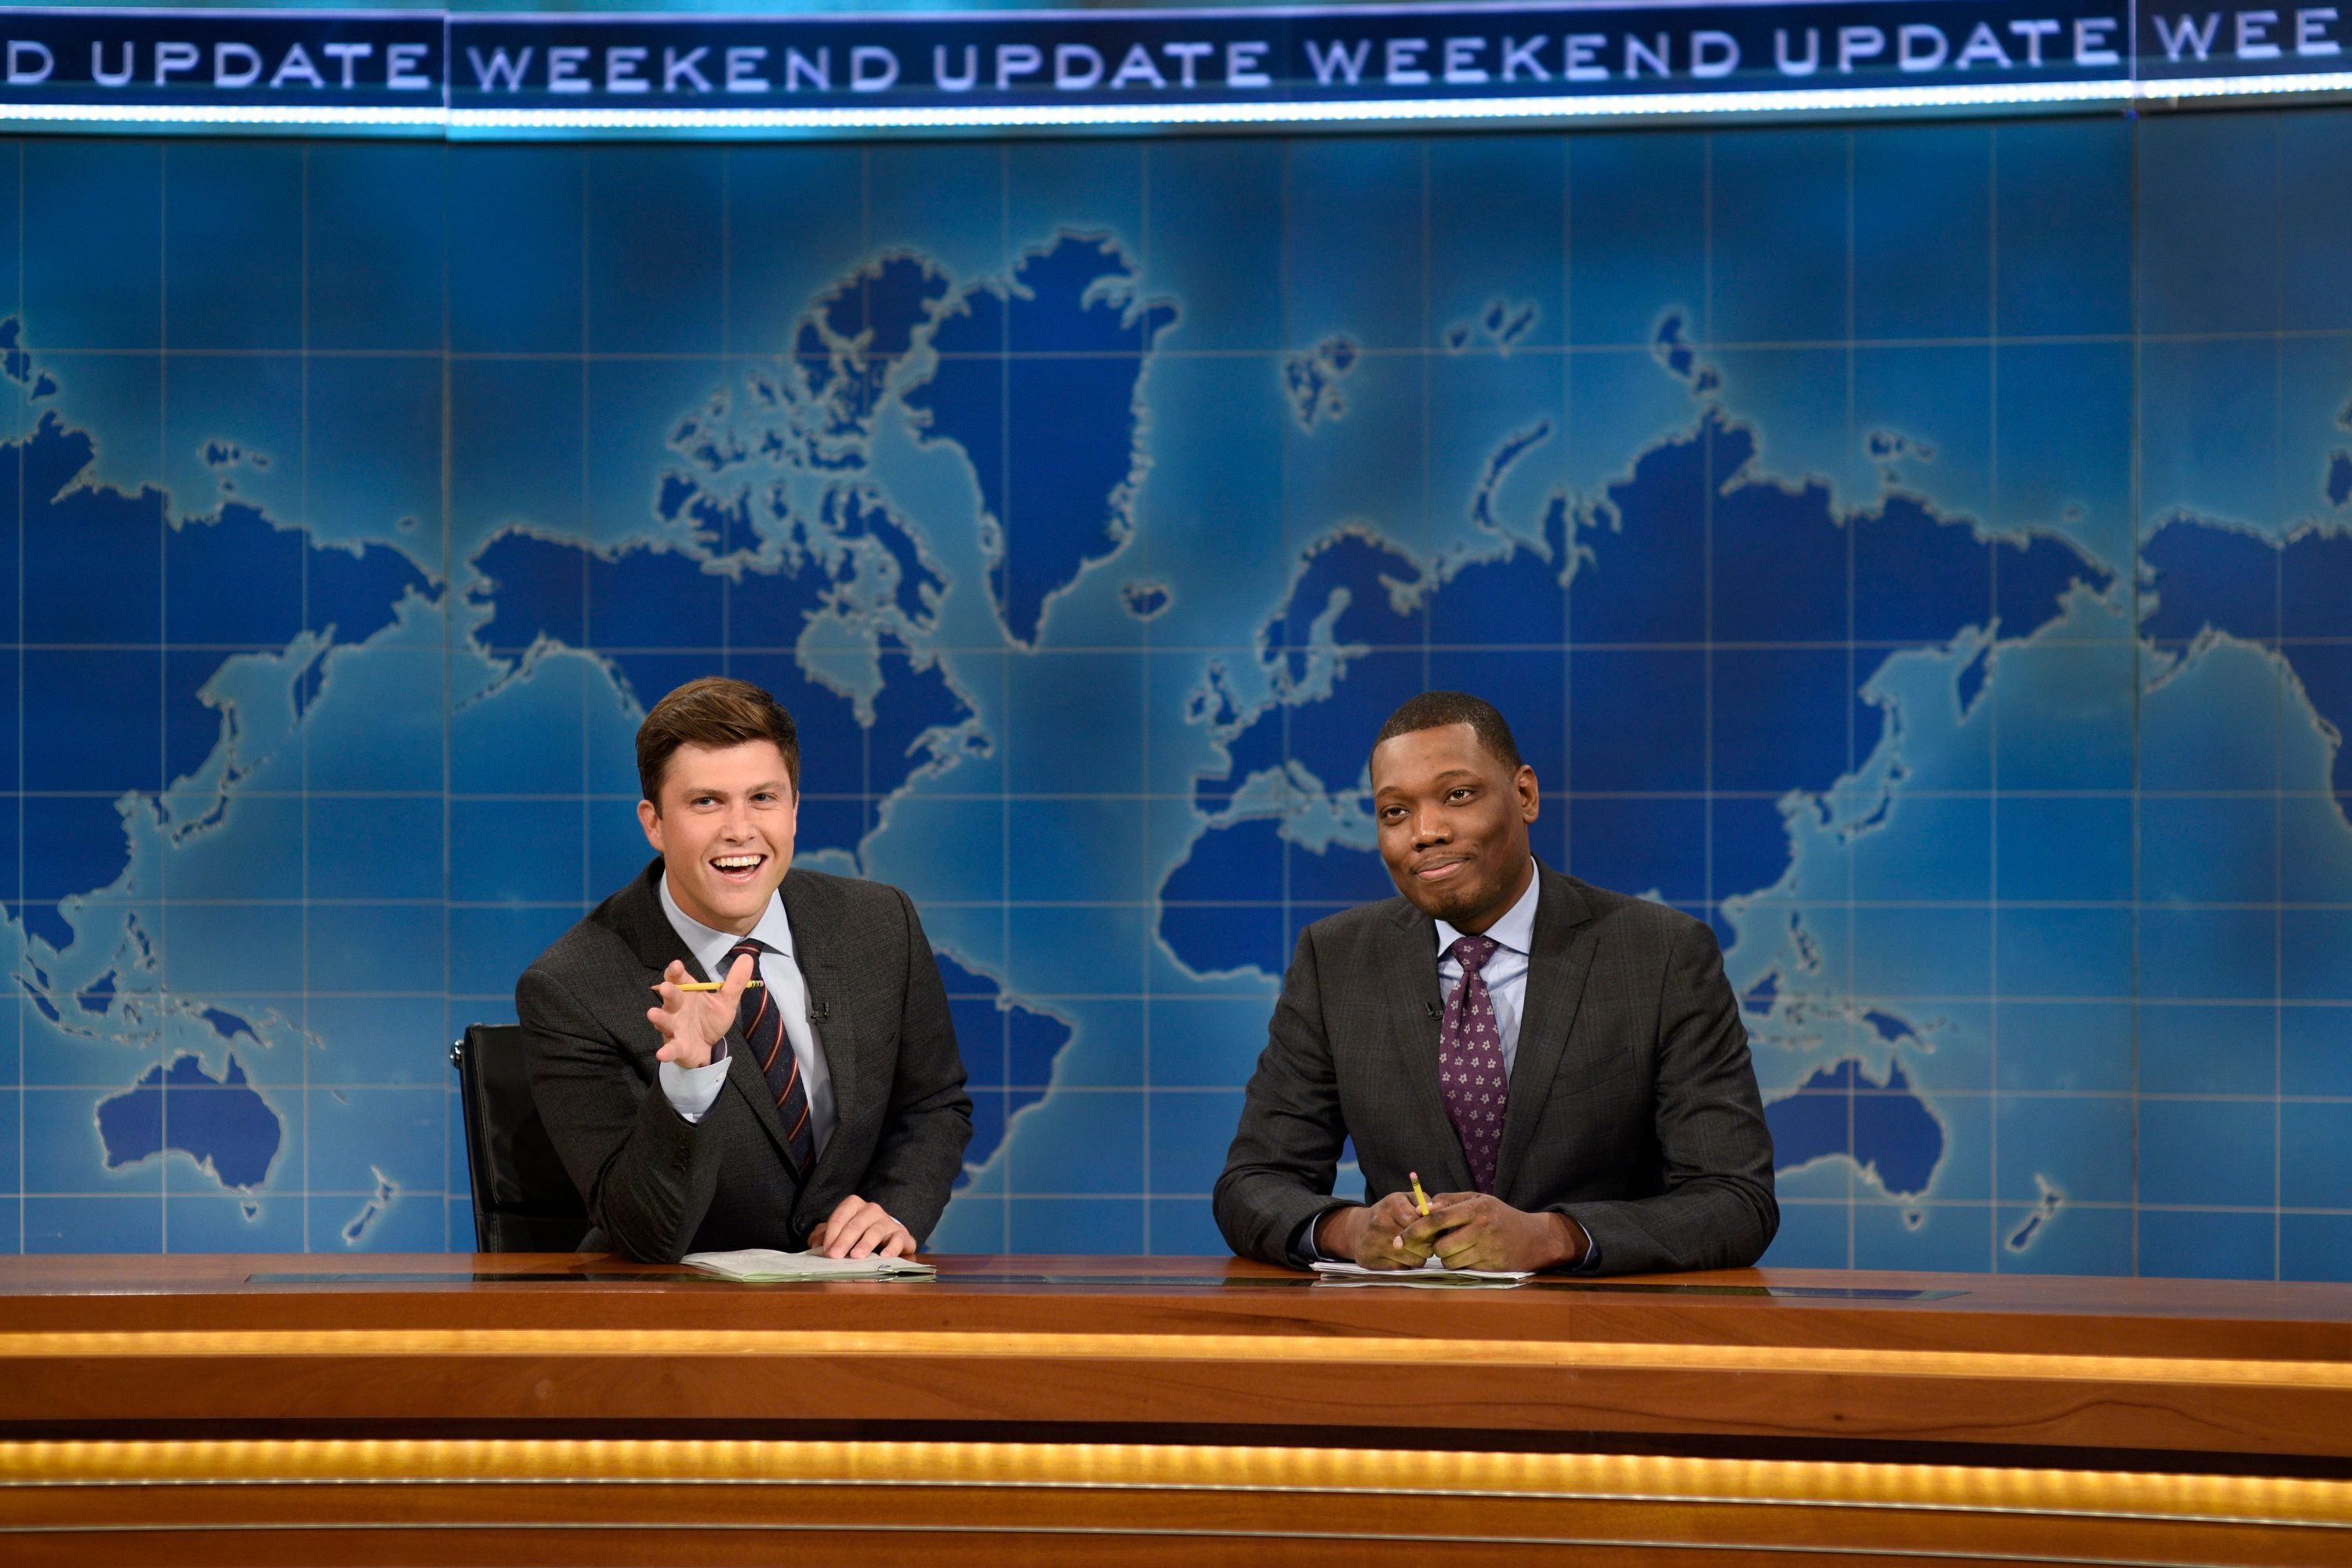 """Weekend Update"" on primetime? We're into it."